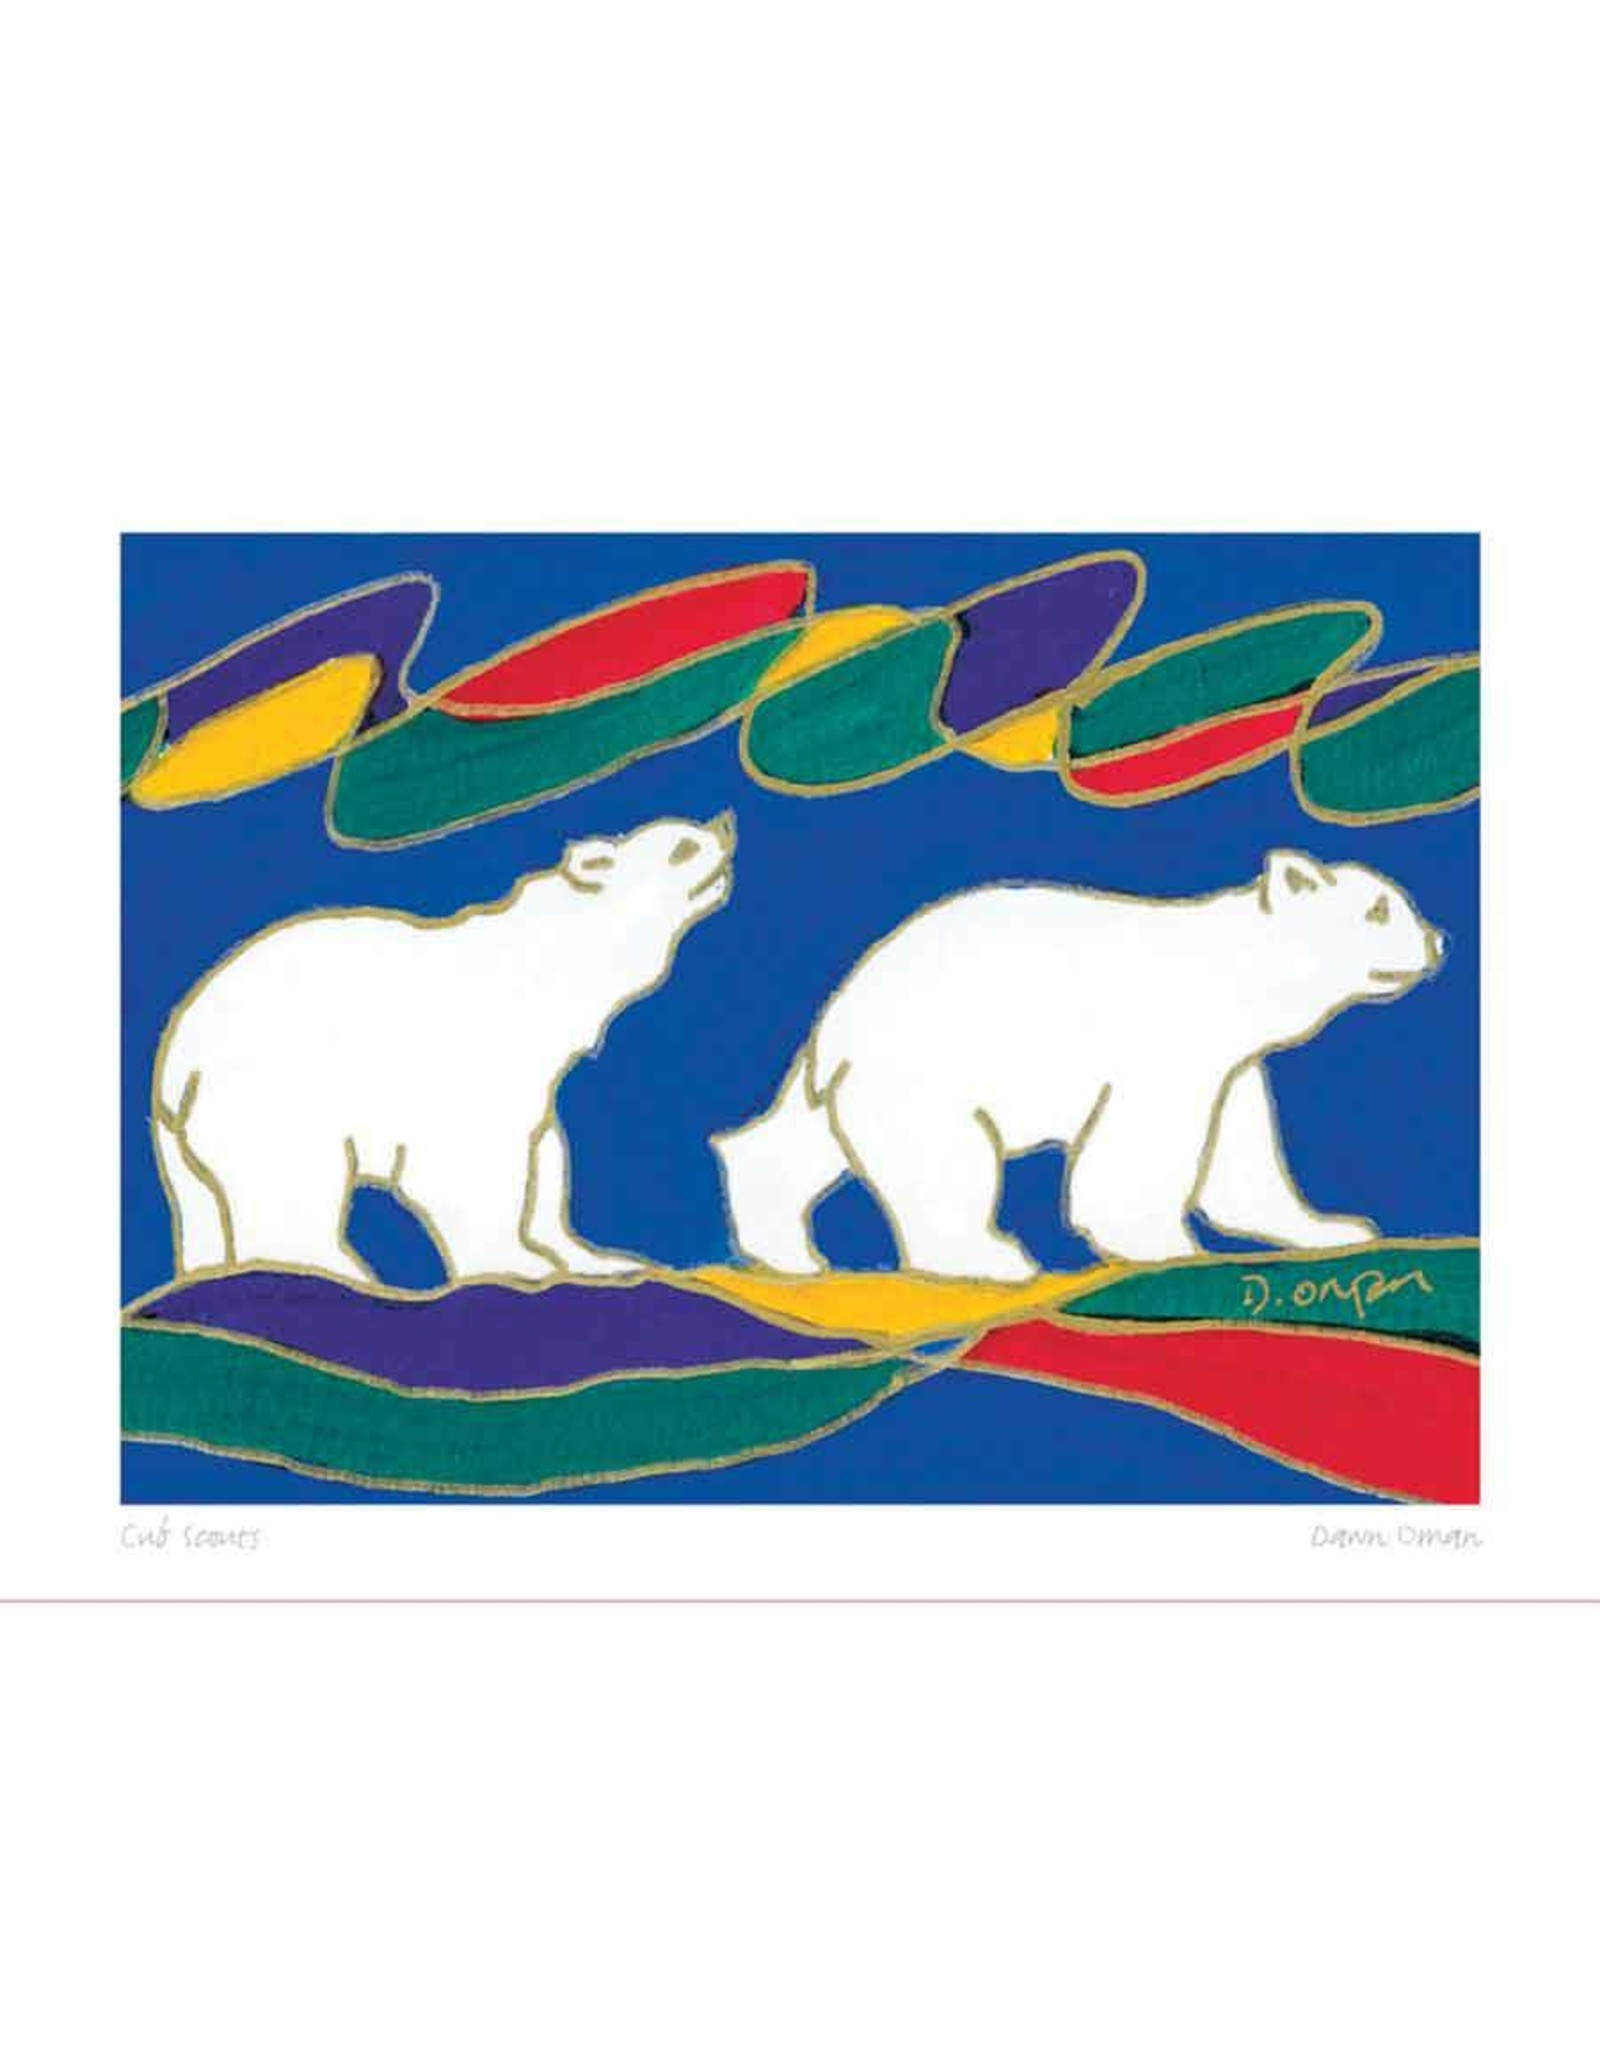 Cub Scouts by Dawn Oman Matted